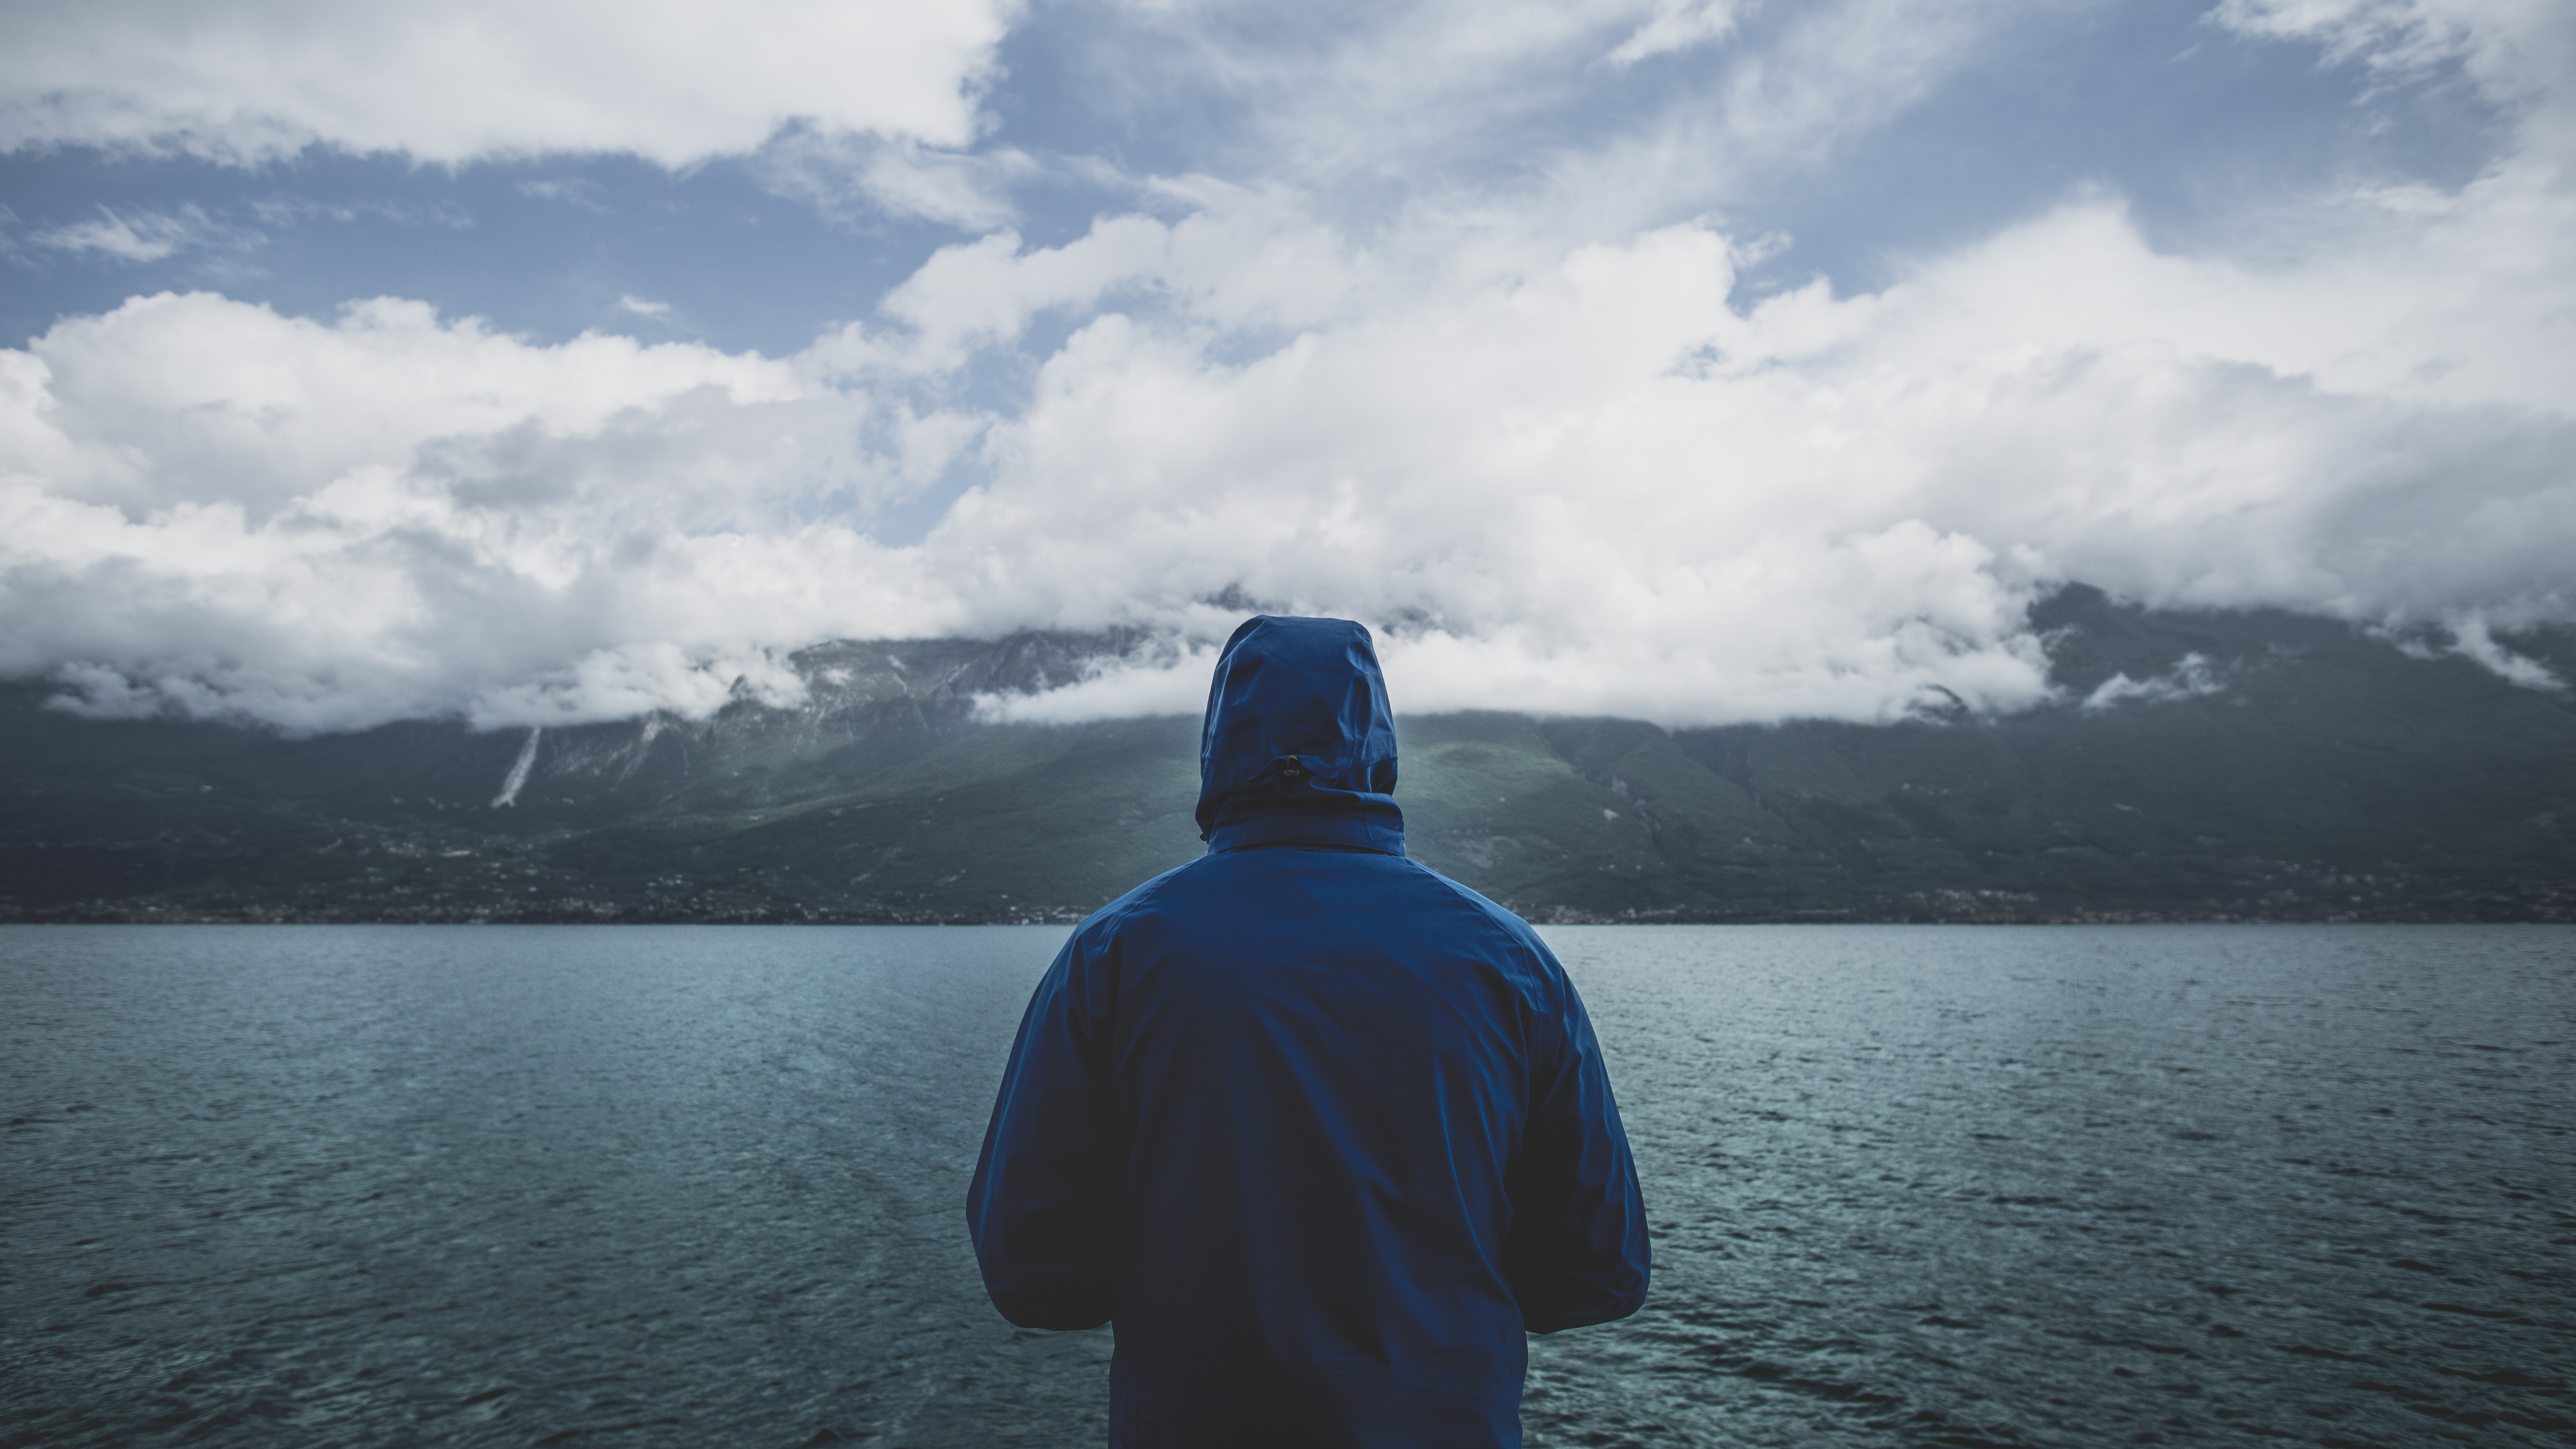 A man in a blue jacket staring out into a lake on a cloudy day